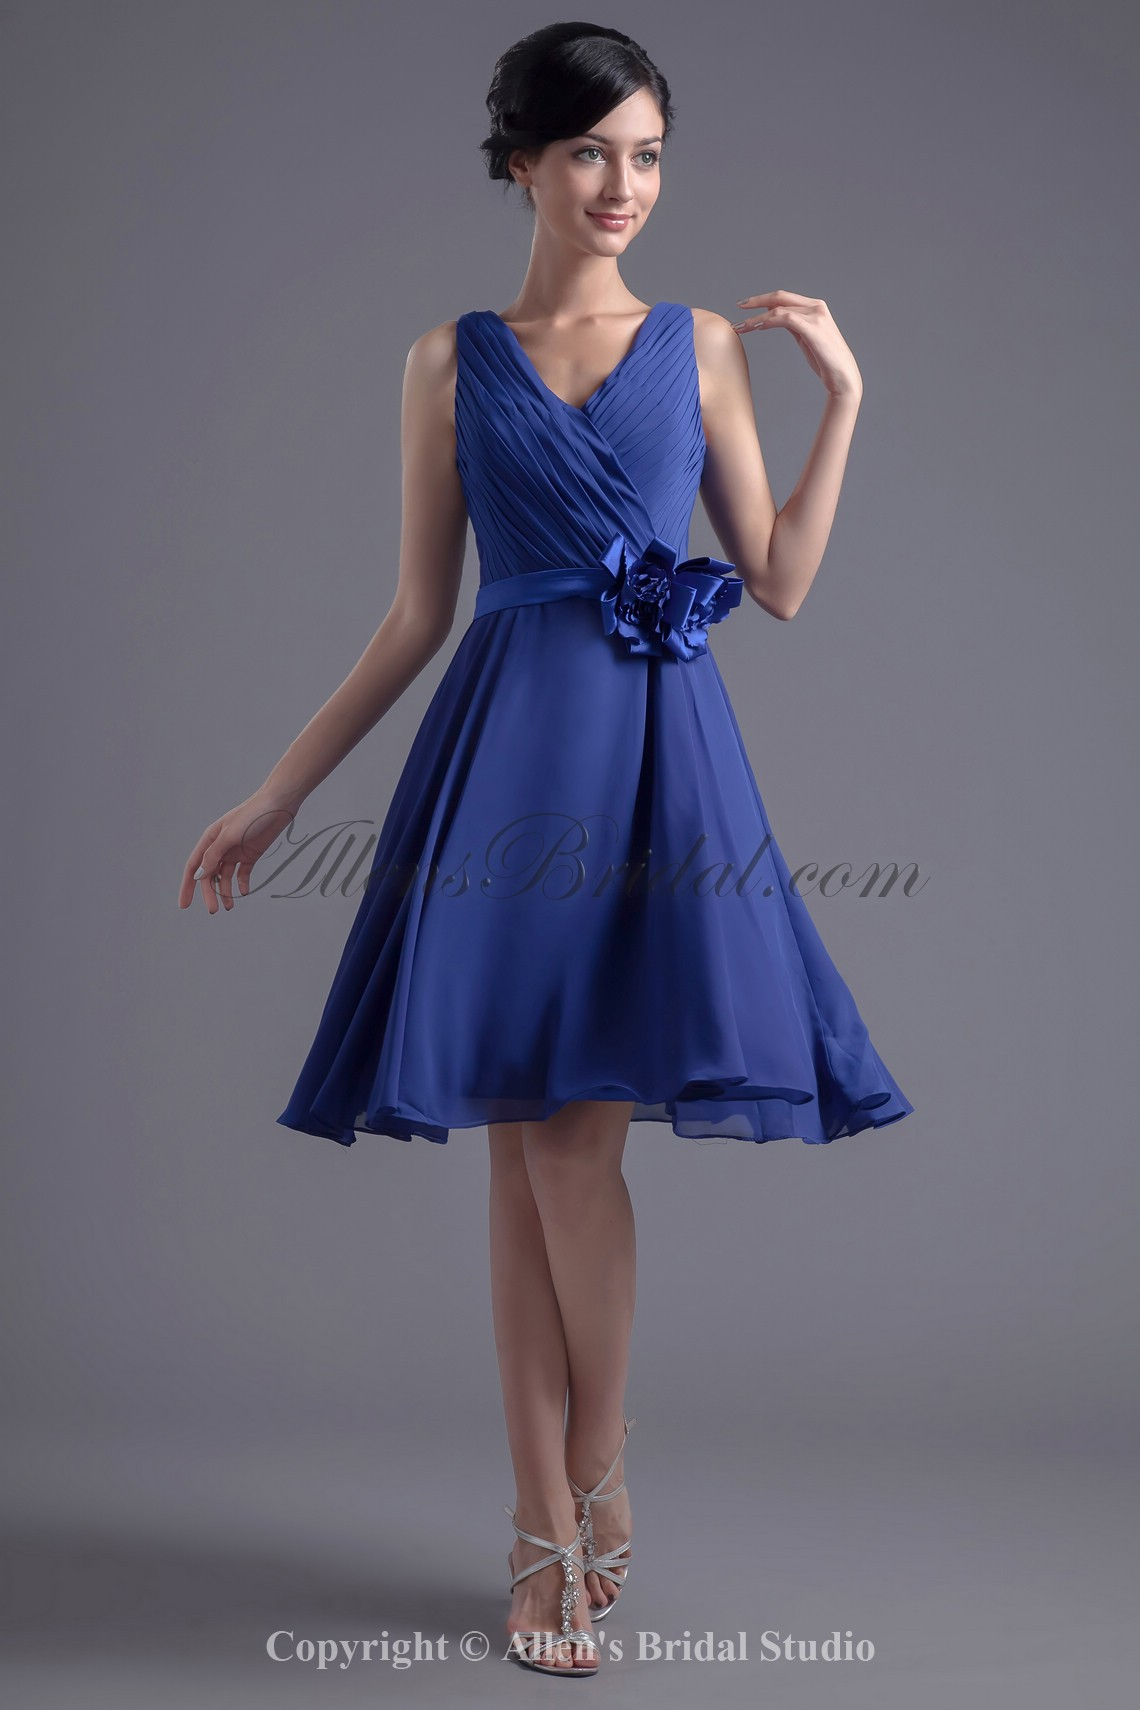 /7-51/chiffon-v-neckline-a-line-knee-length-hand-made-flowers-cocktail-dress.jpg